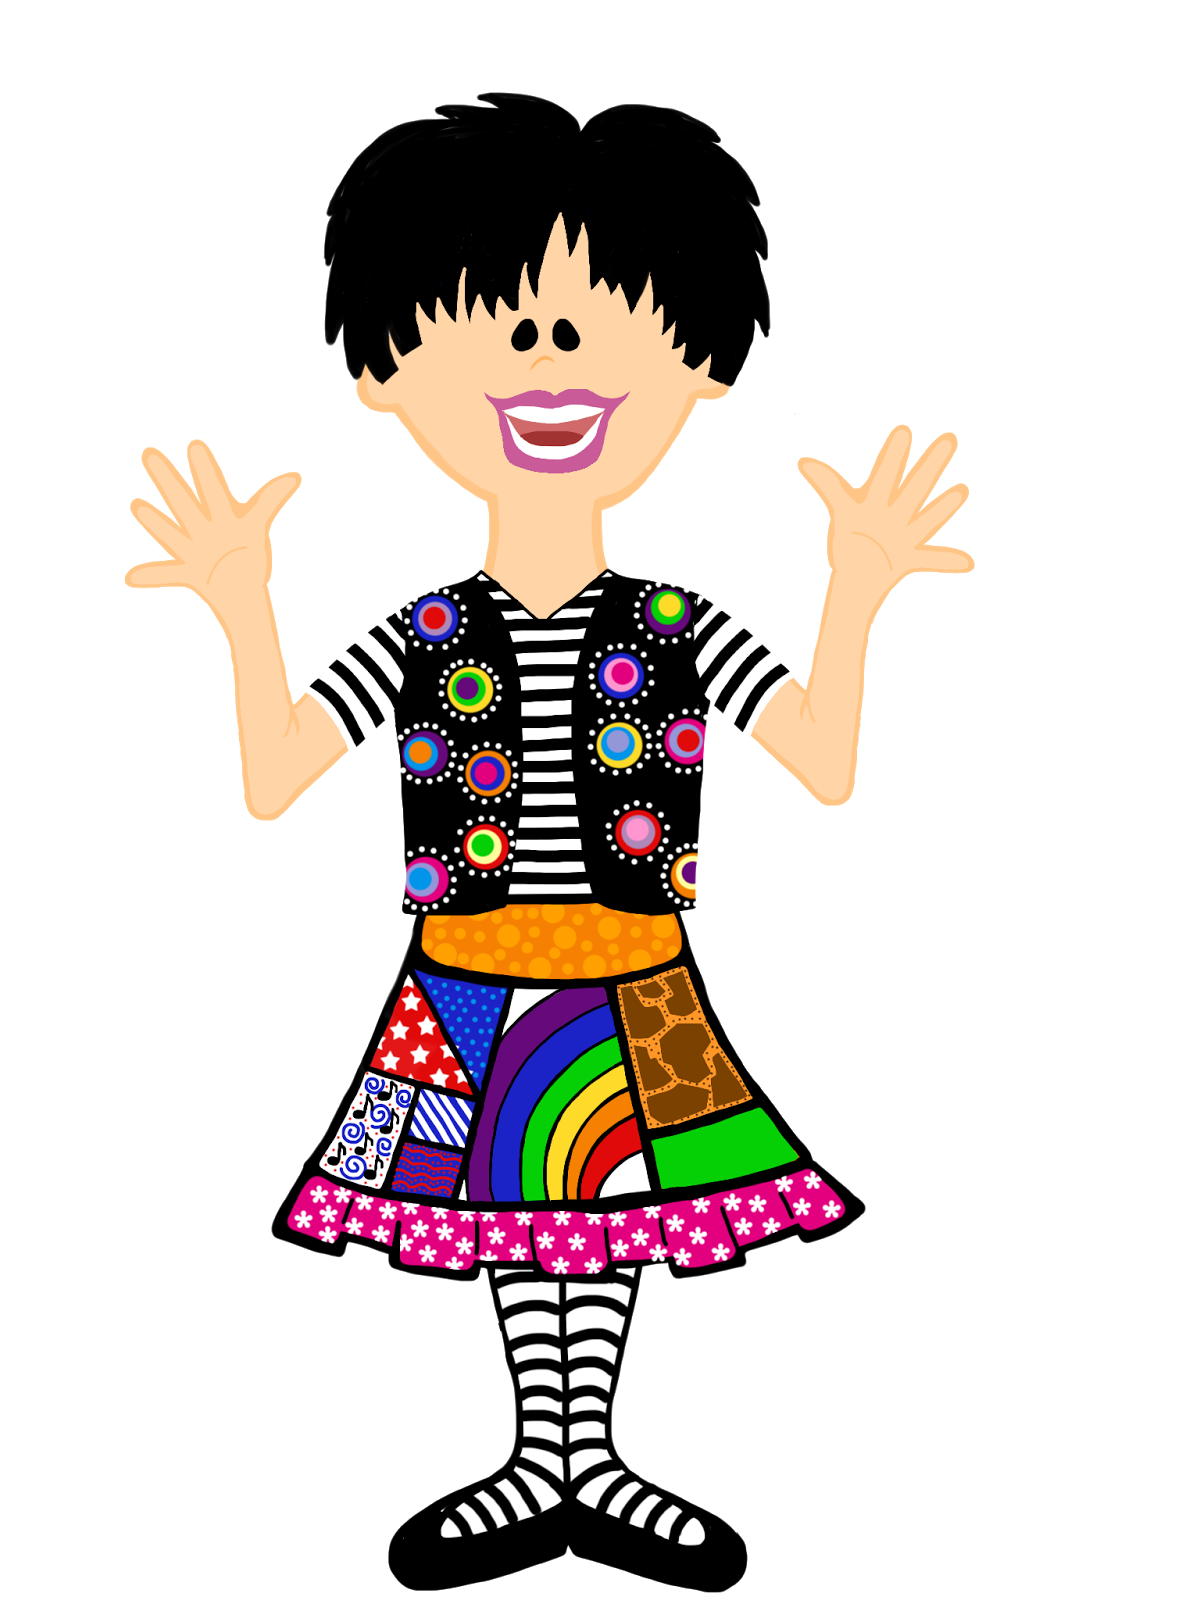 Ldms day image result. Clipart clothes mismatch